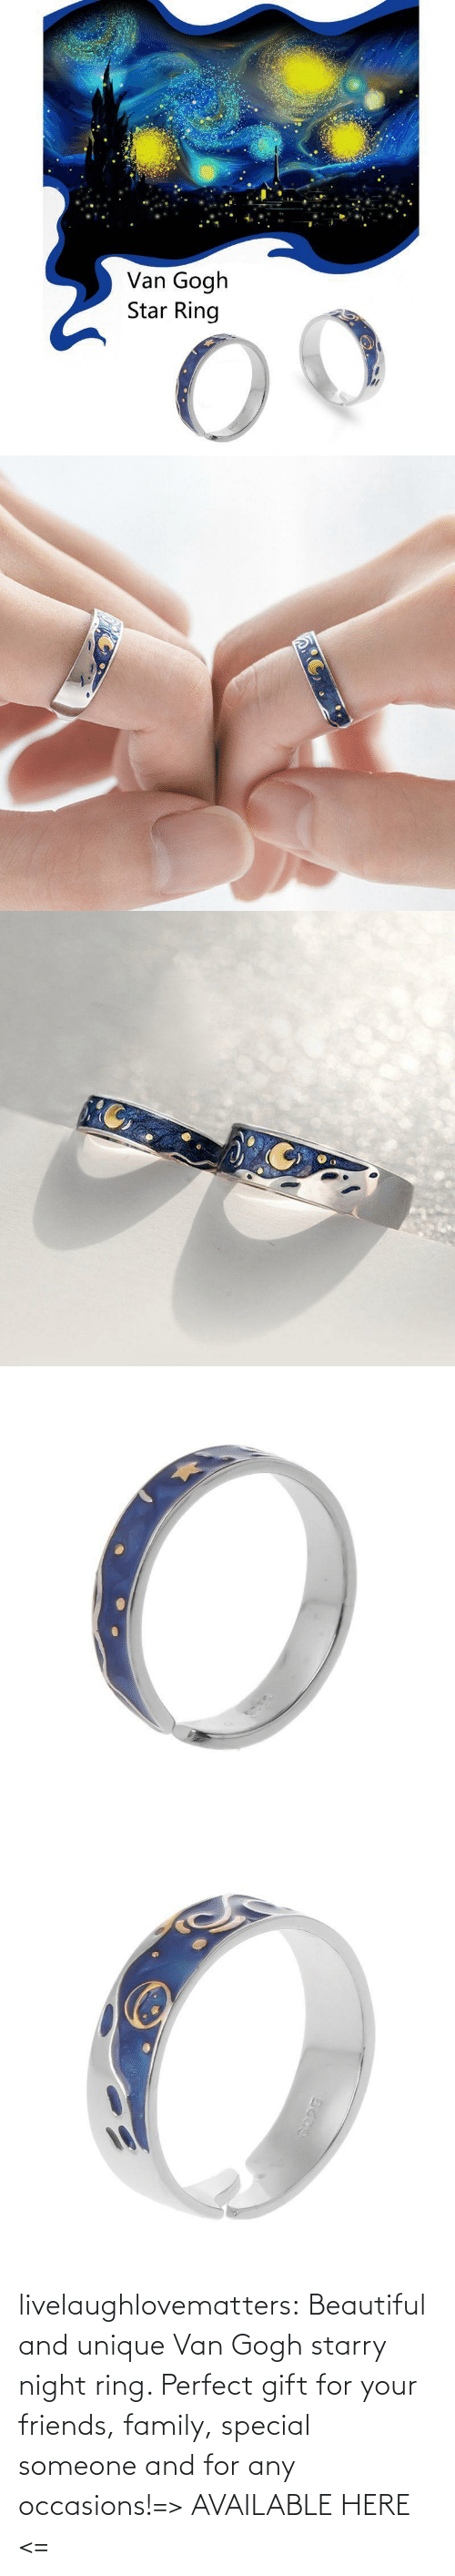 ring: livelaughlovematters:  Beautiful and unique Van Gogh starry night ring. Perfect gift for your friends, family, special someone and for any occasions!=>AVAILABLE HERE <=